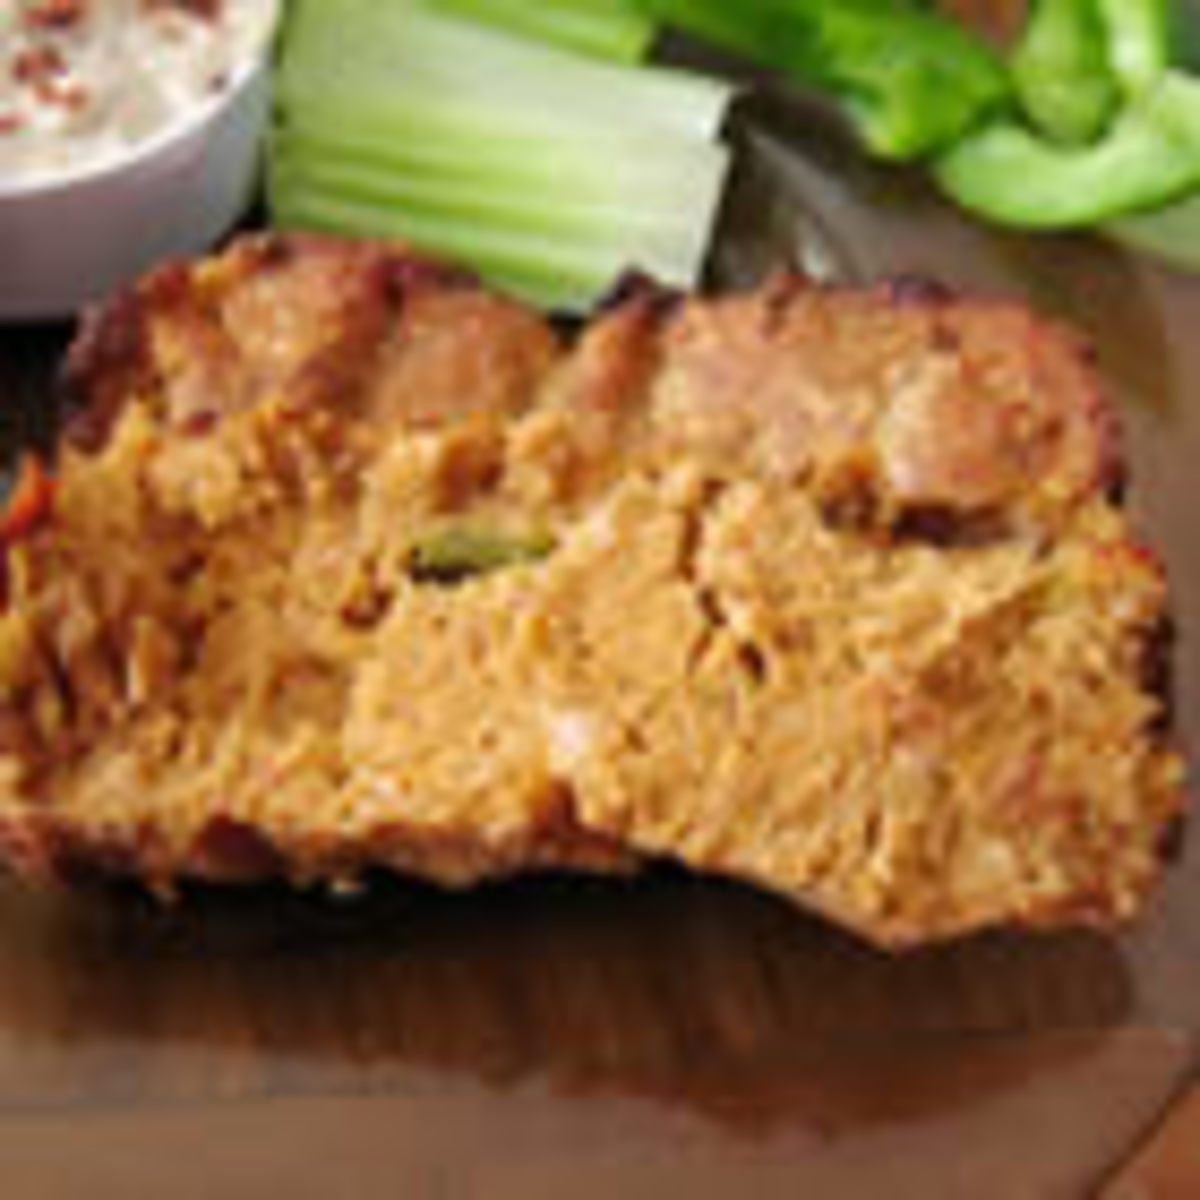 Zesty Chicken Meatloaf (from Allrecipes)